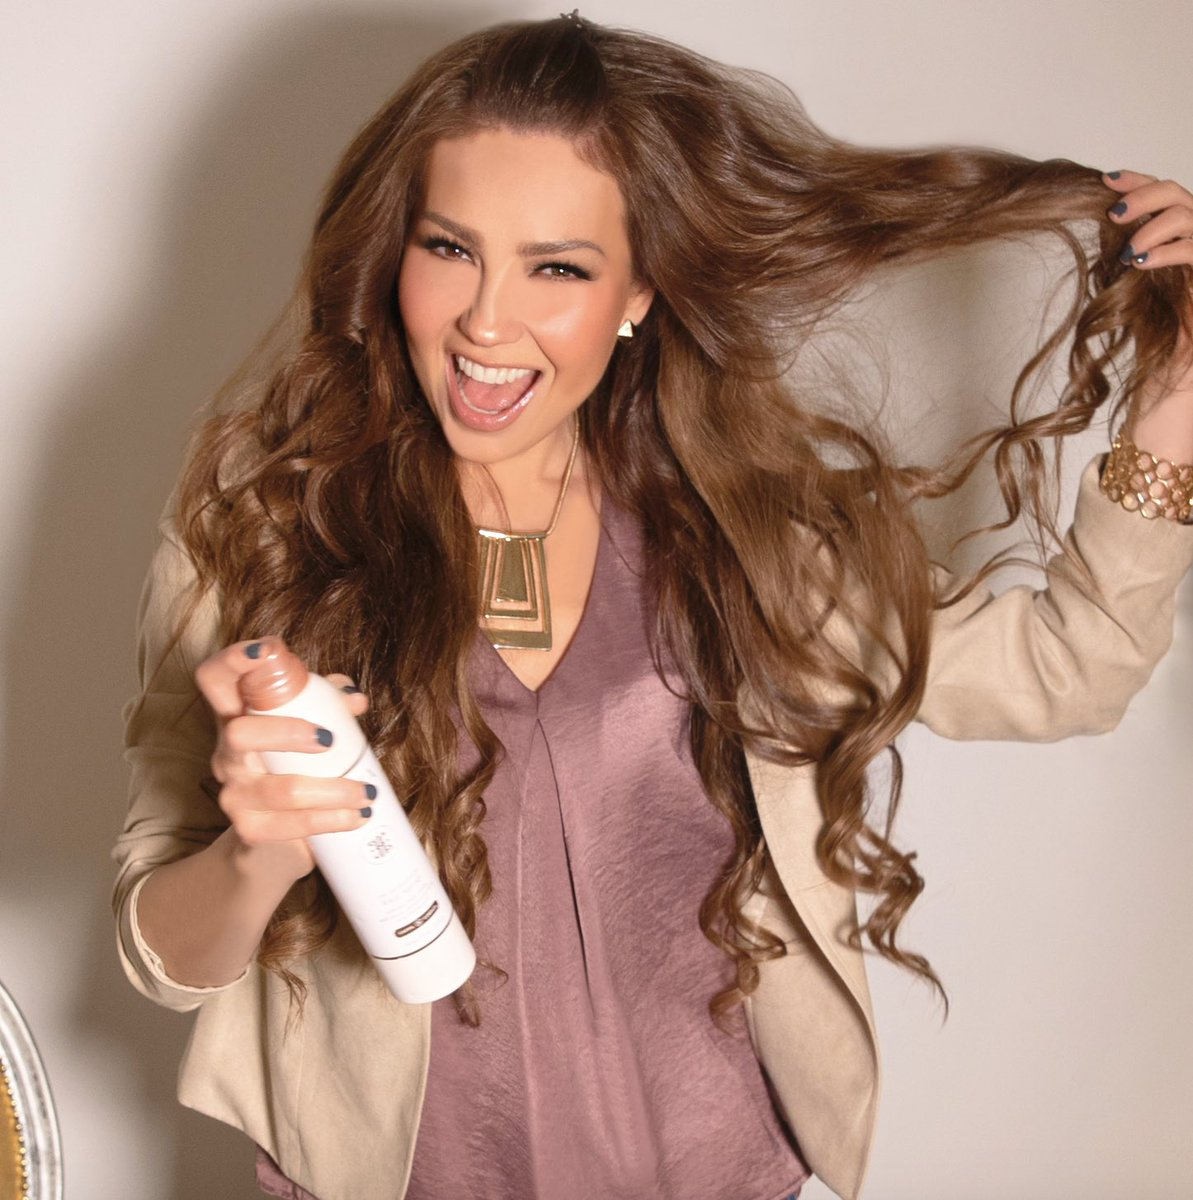 """The more volume, the better! """"The Perfectionist"""" #Hair Spray, locks in my curls all day and adds more """"bounce"""" to my 'do! Shop my hair care line #AdriaByThalia at @Walmart and give your hair the love it deserves. #HairCare #HairLove #HairProducts #Volume #Curls #walmartfinds<br>http://pic.twitter.com/aphP1WeUPI"""